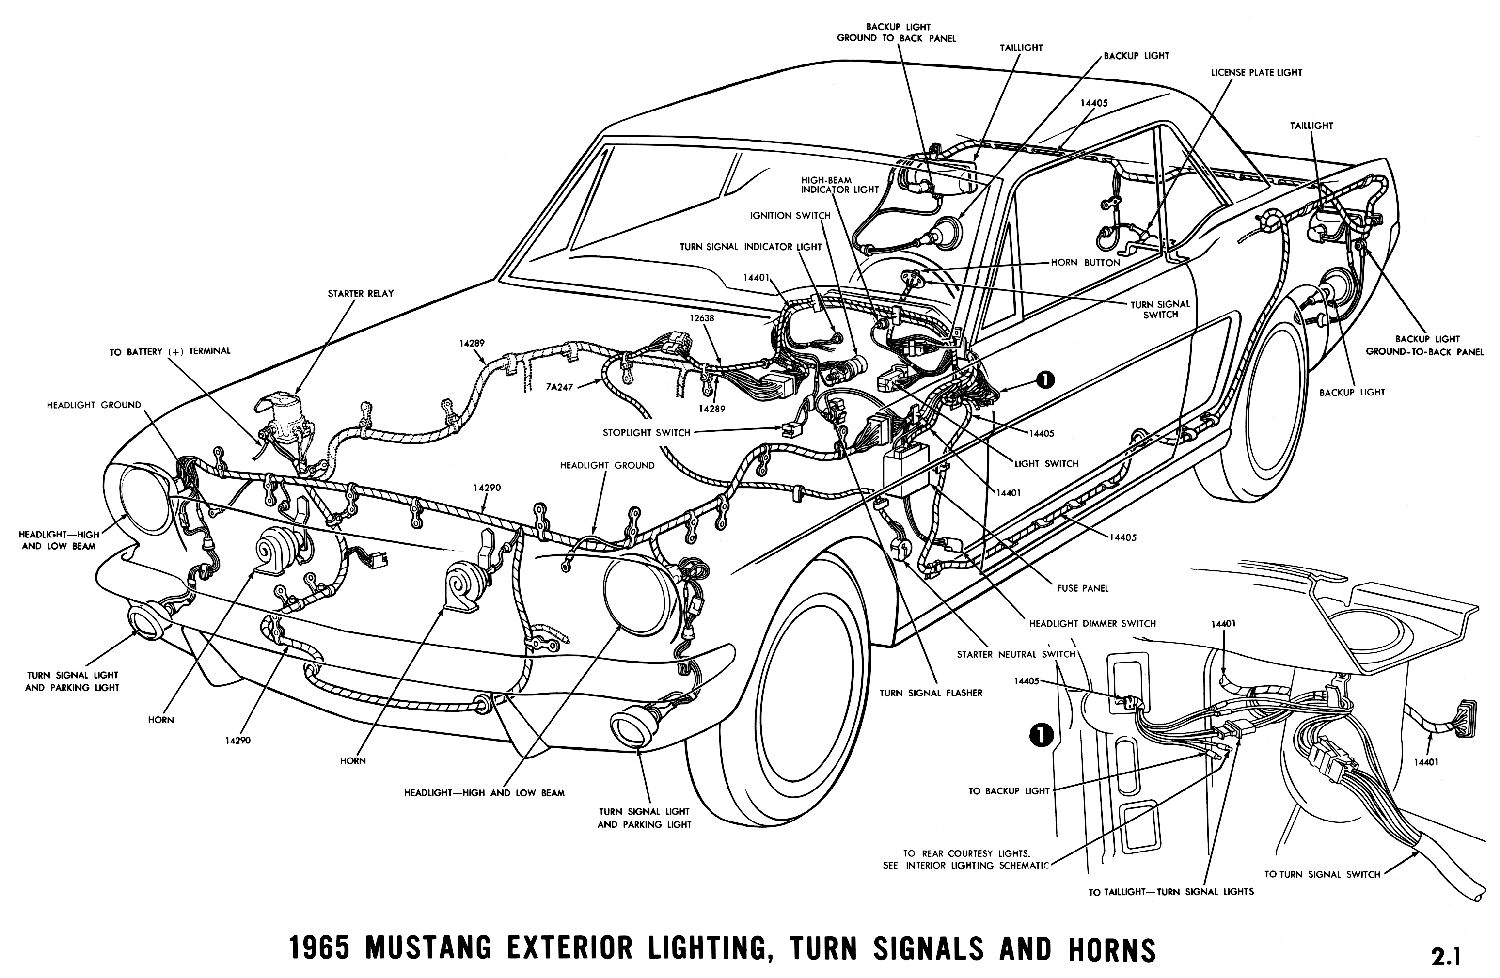 1965d 1965 mustang wiring diagrams average joe restoration wiring diagram at panicattacktreatment.co